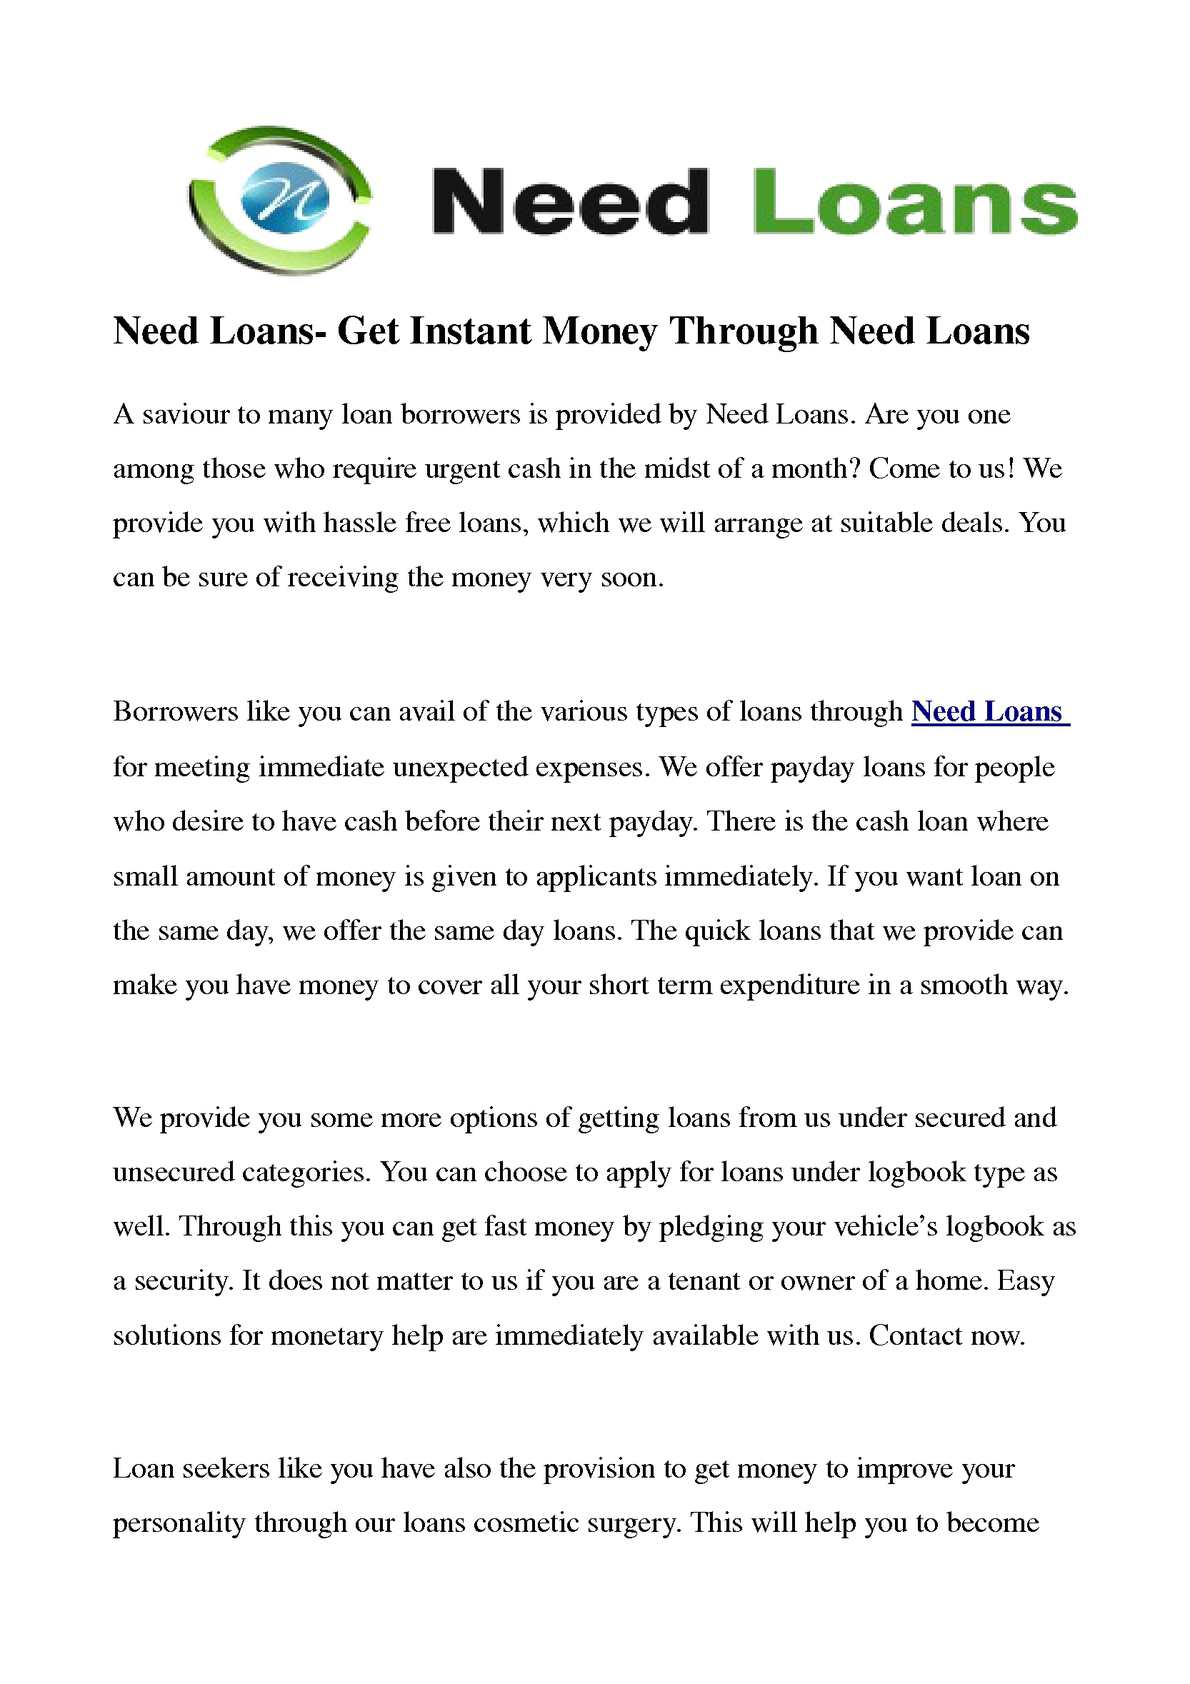 Calaméo - Need Loans- Get Instant Money Through Need Loans